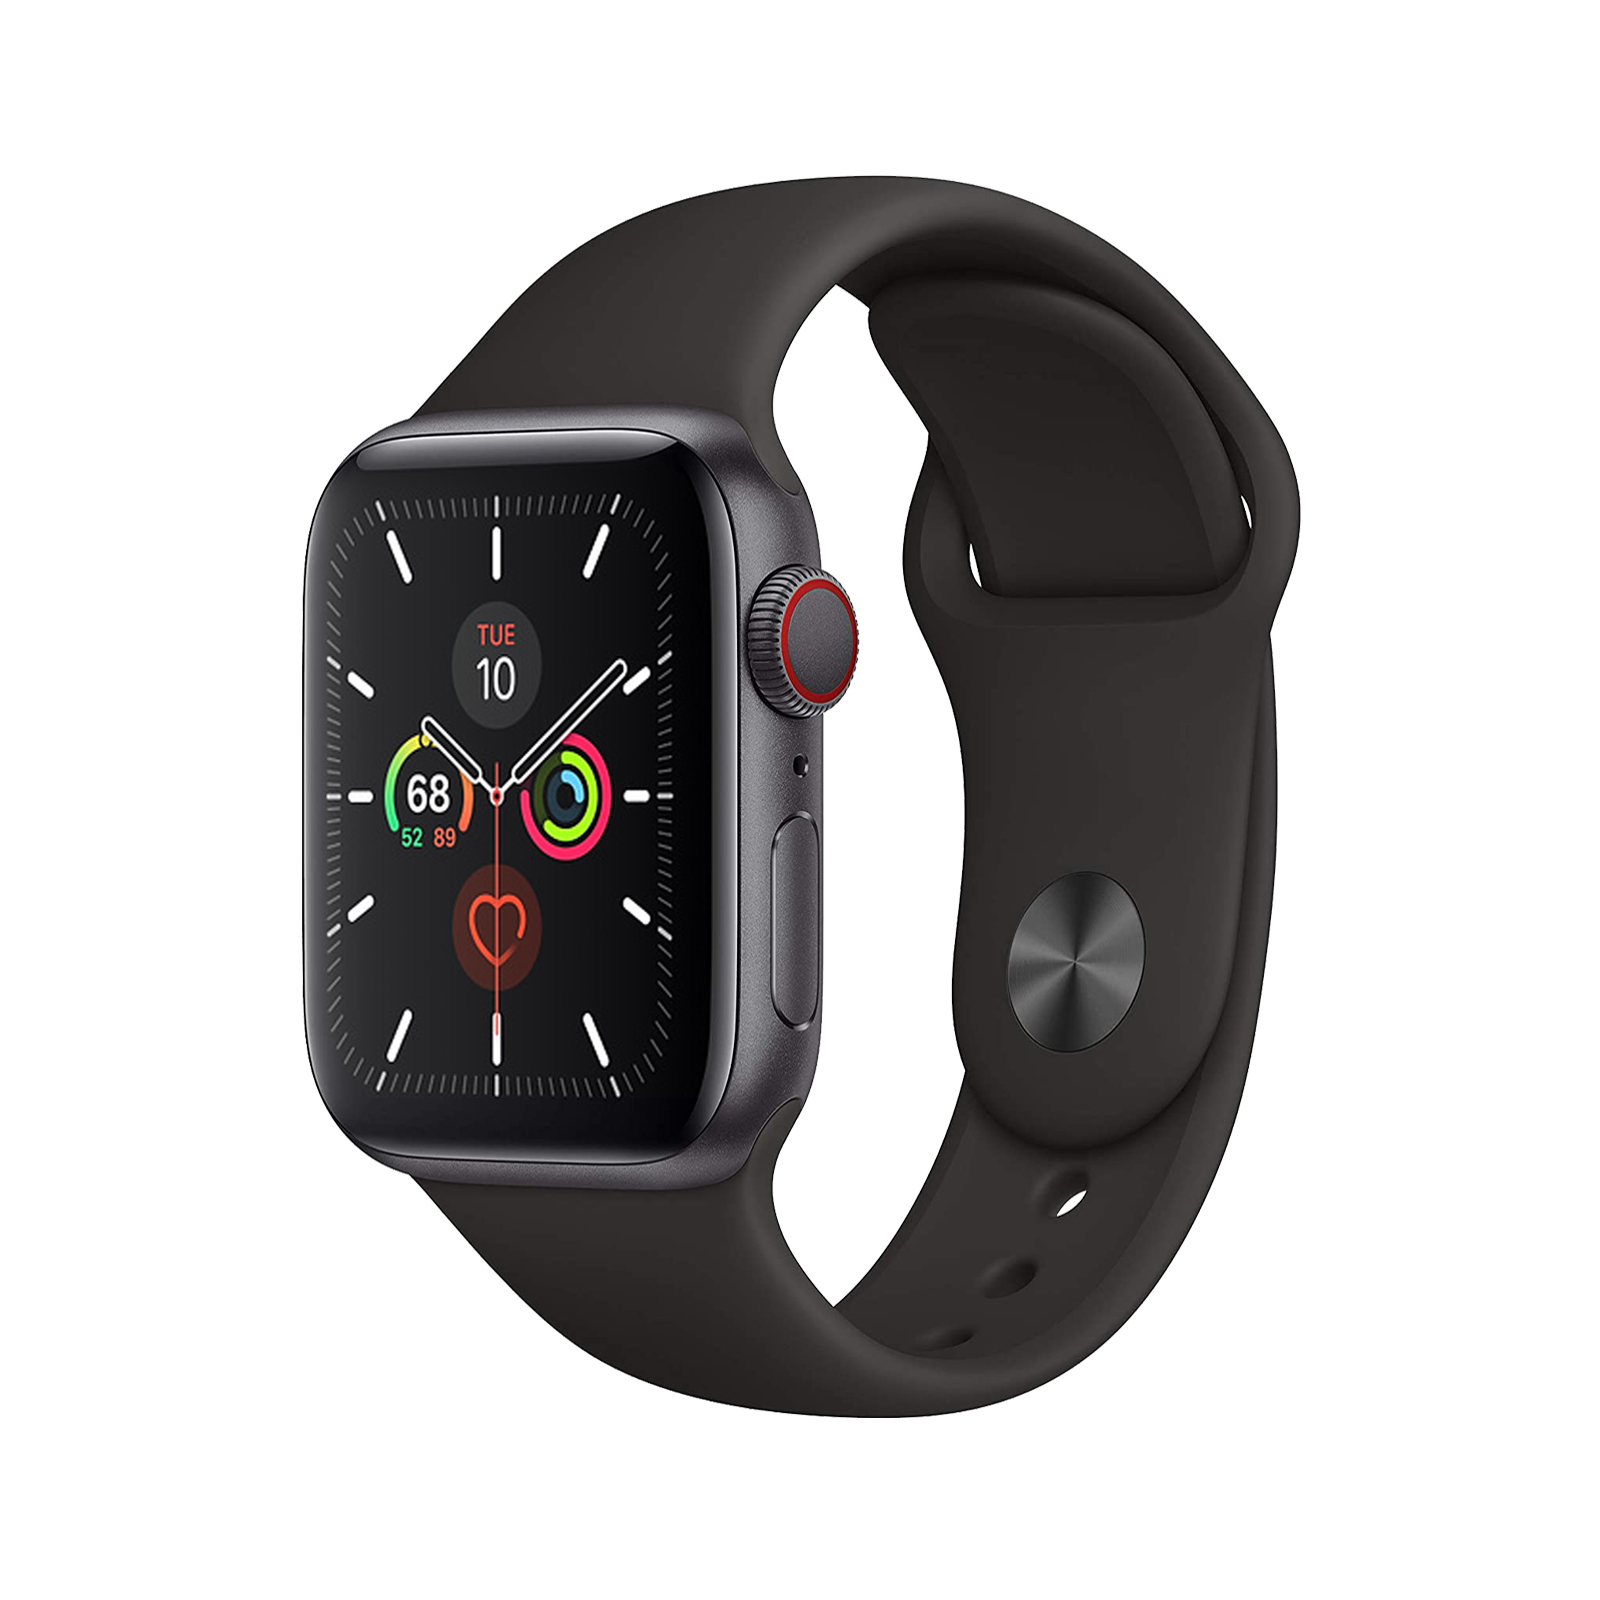 Apple Watch Series 5 [GPS + Cellular] [44mm] [Black] [Excellent] [12M]